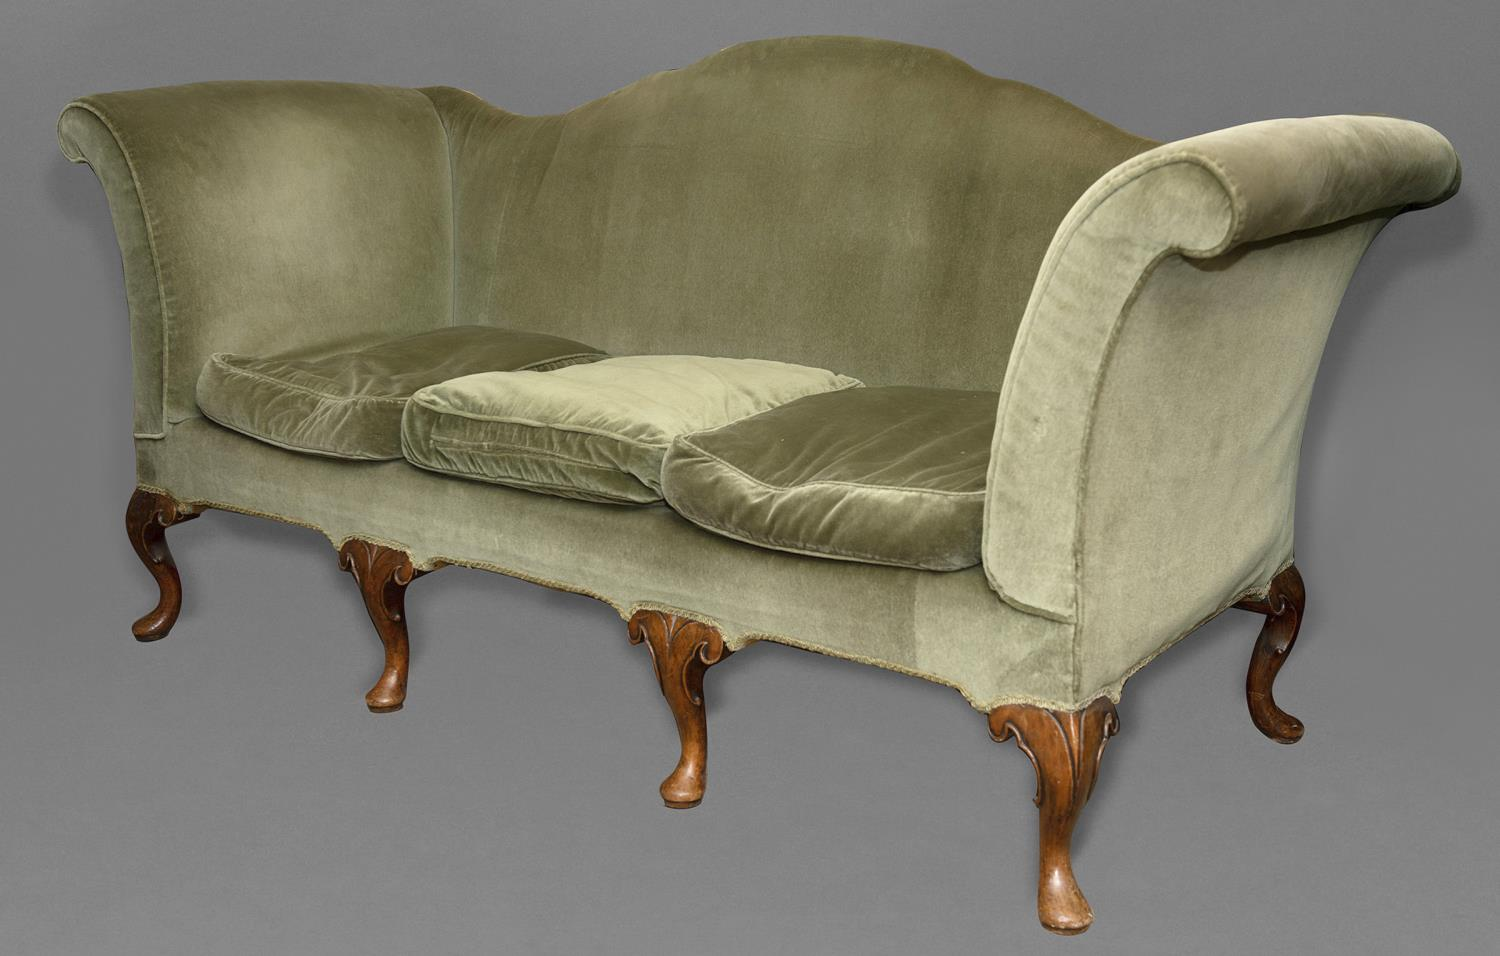 A QUEEN ANNE STYLE THREE SEATER SETTEE. The settee upholstered in green velvet with an arched and - Image 2 of 2